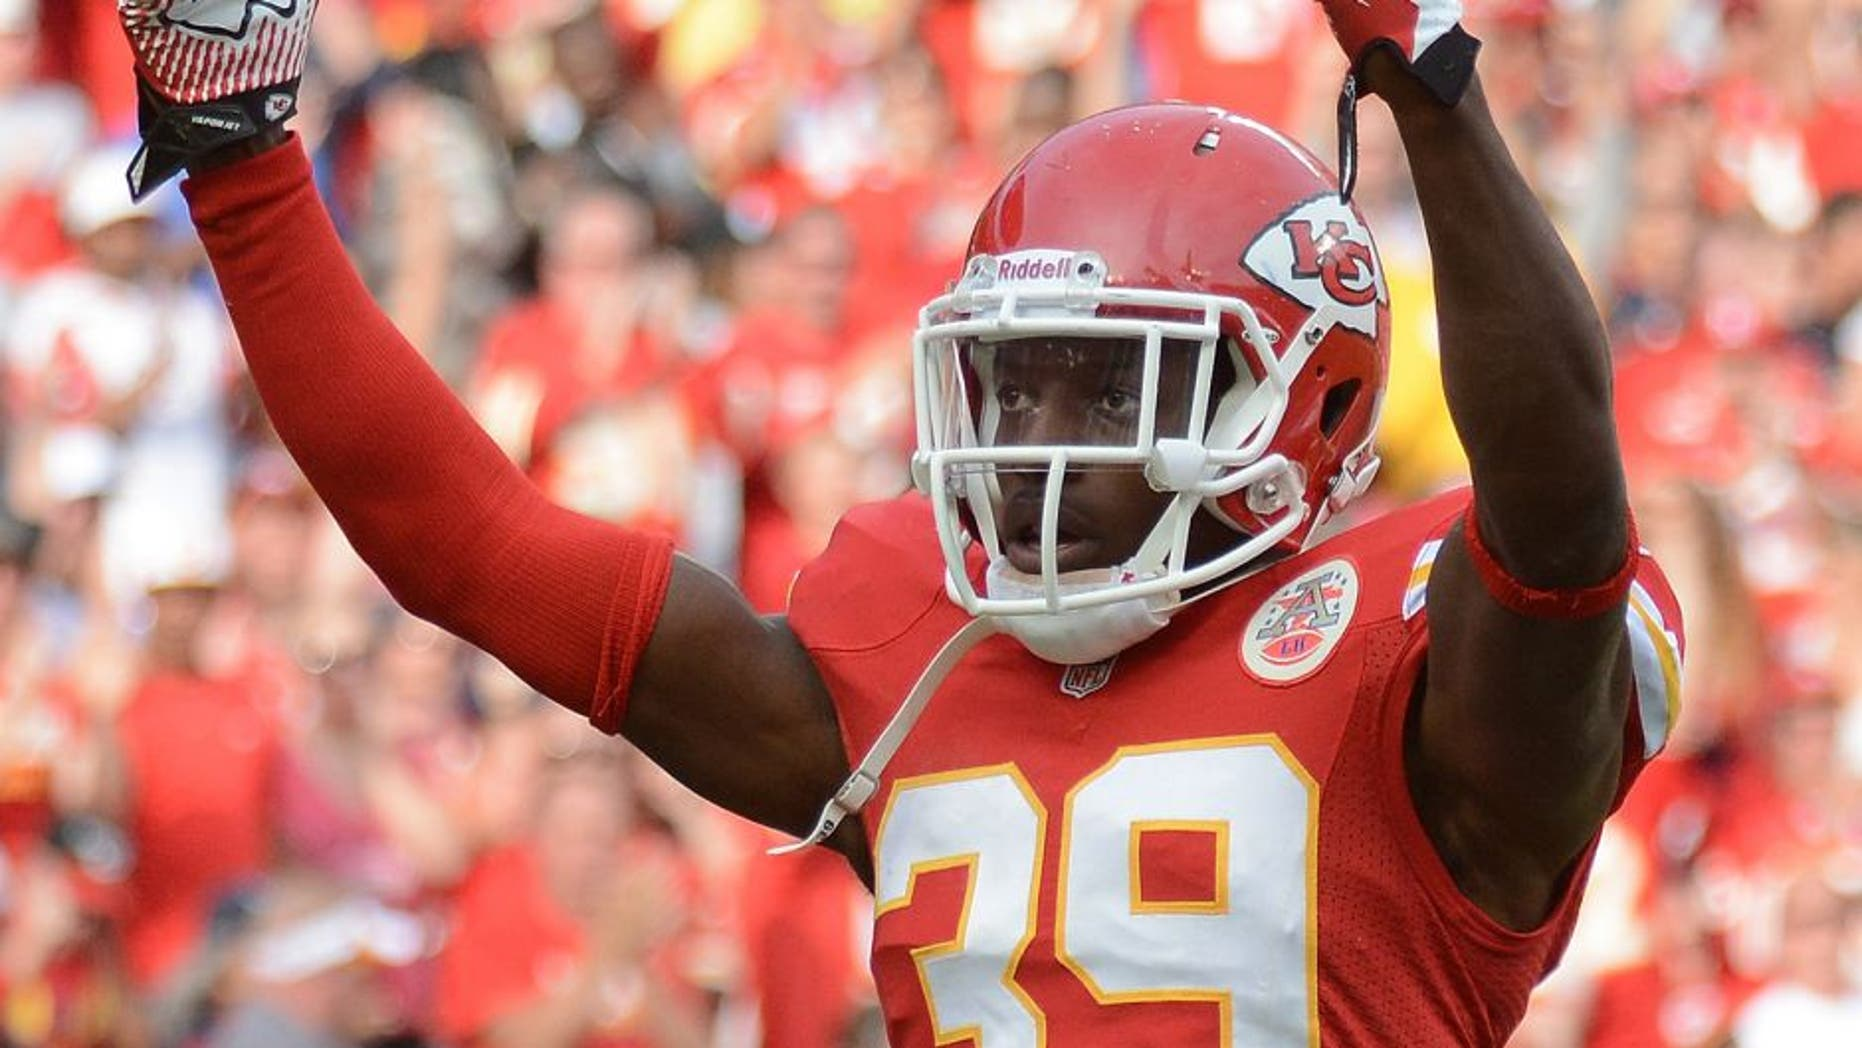 Oct 20, 2013; Kansas City, MO, USA; Kansas City Chiefs defensive back Husain Abdullah (39) motions to the crowd during the first half of the game against the Houston Texans at Arrowhead Stadium. The Chiefs won 17-16. Mandatory Credit: Denny Medley-USA TODAY Sports